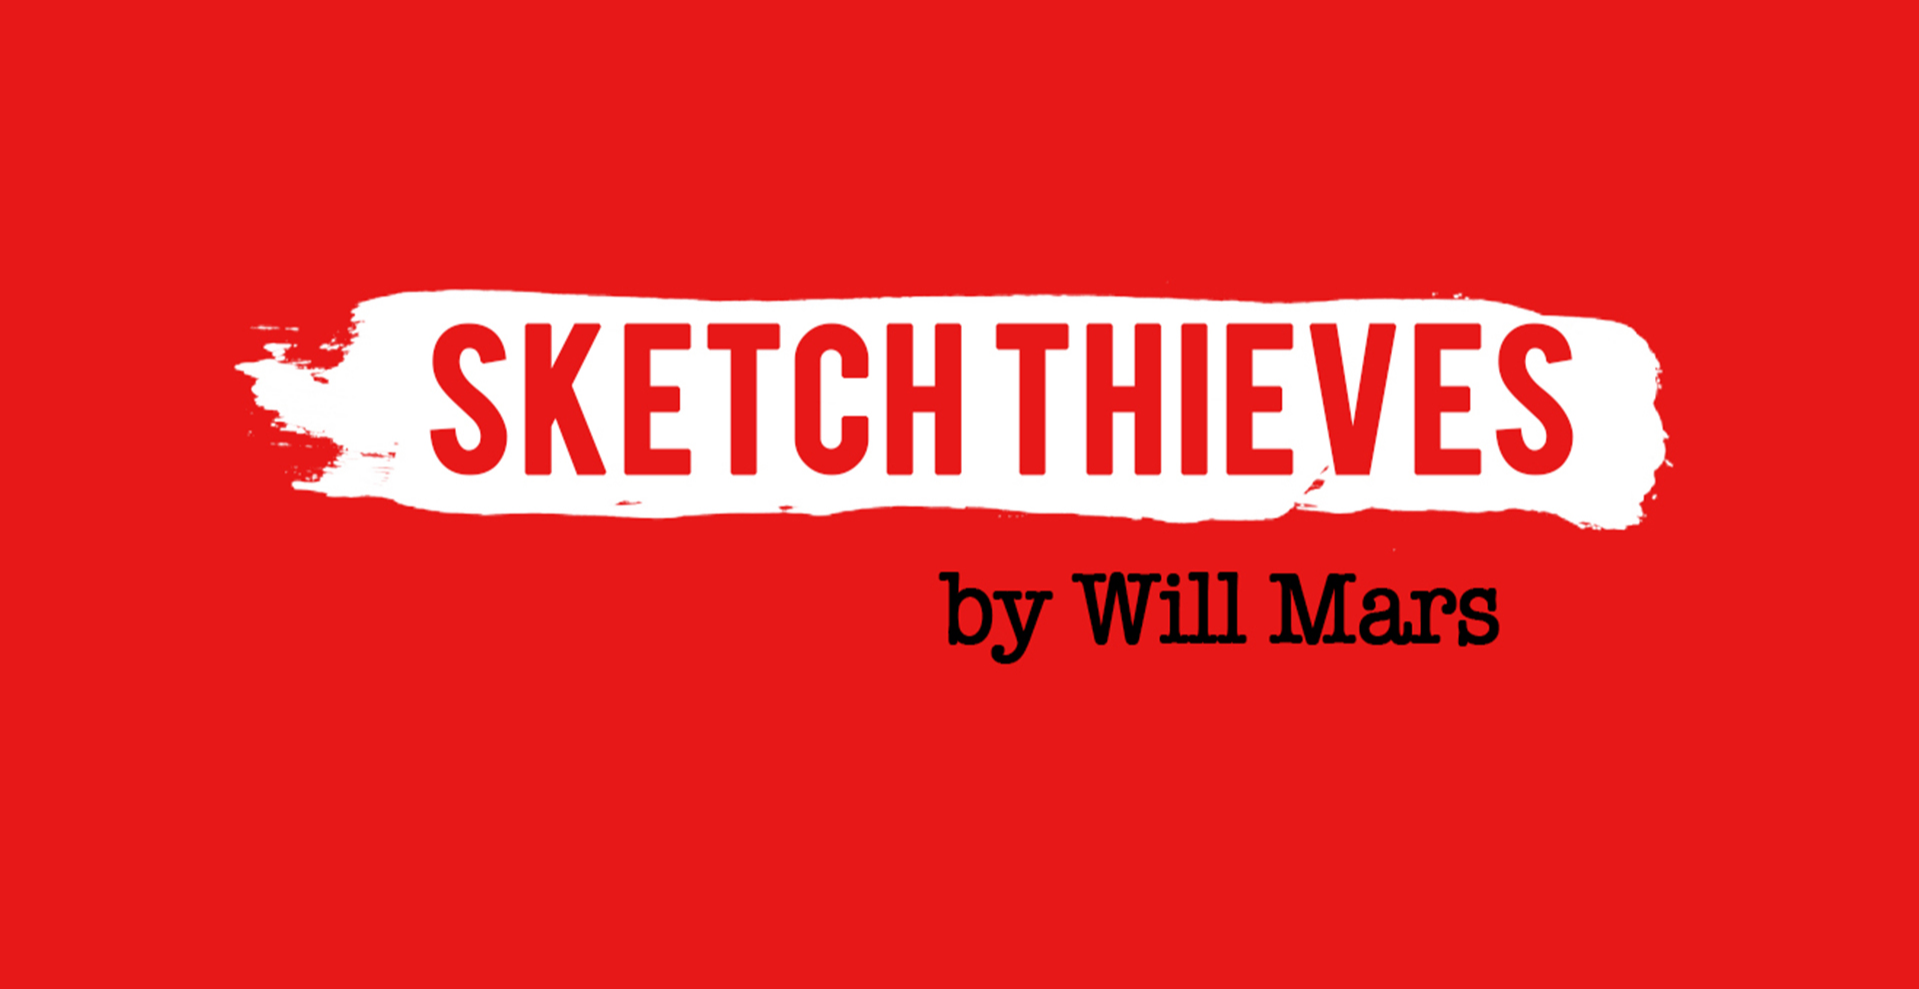 Sketch Thieves